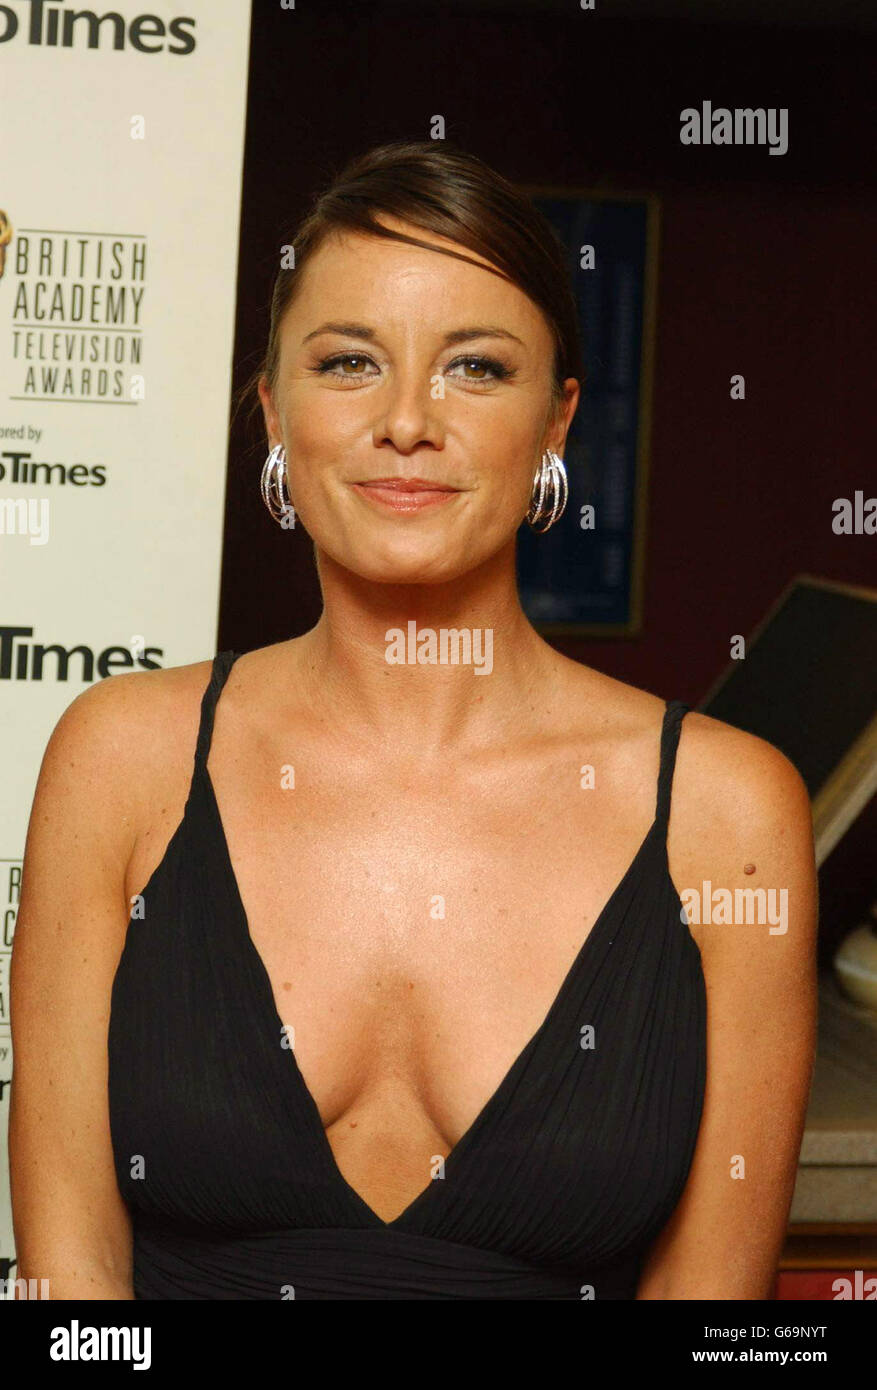 Cleavage Tamzin Outhwaite nude (83 foto and video), Sexy, Fappening, Selfie, swimsuit 2018